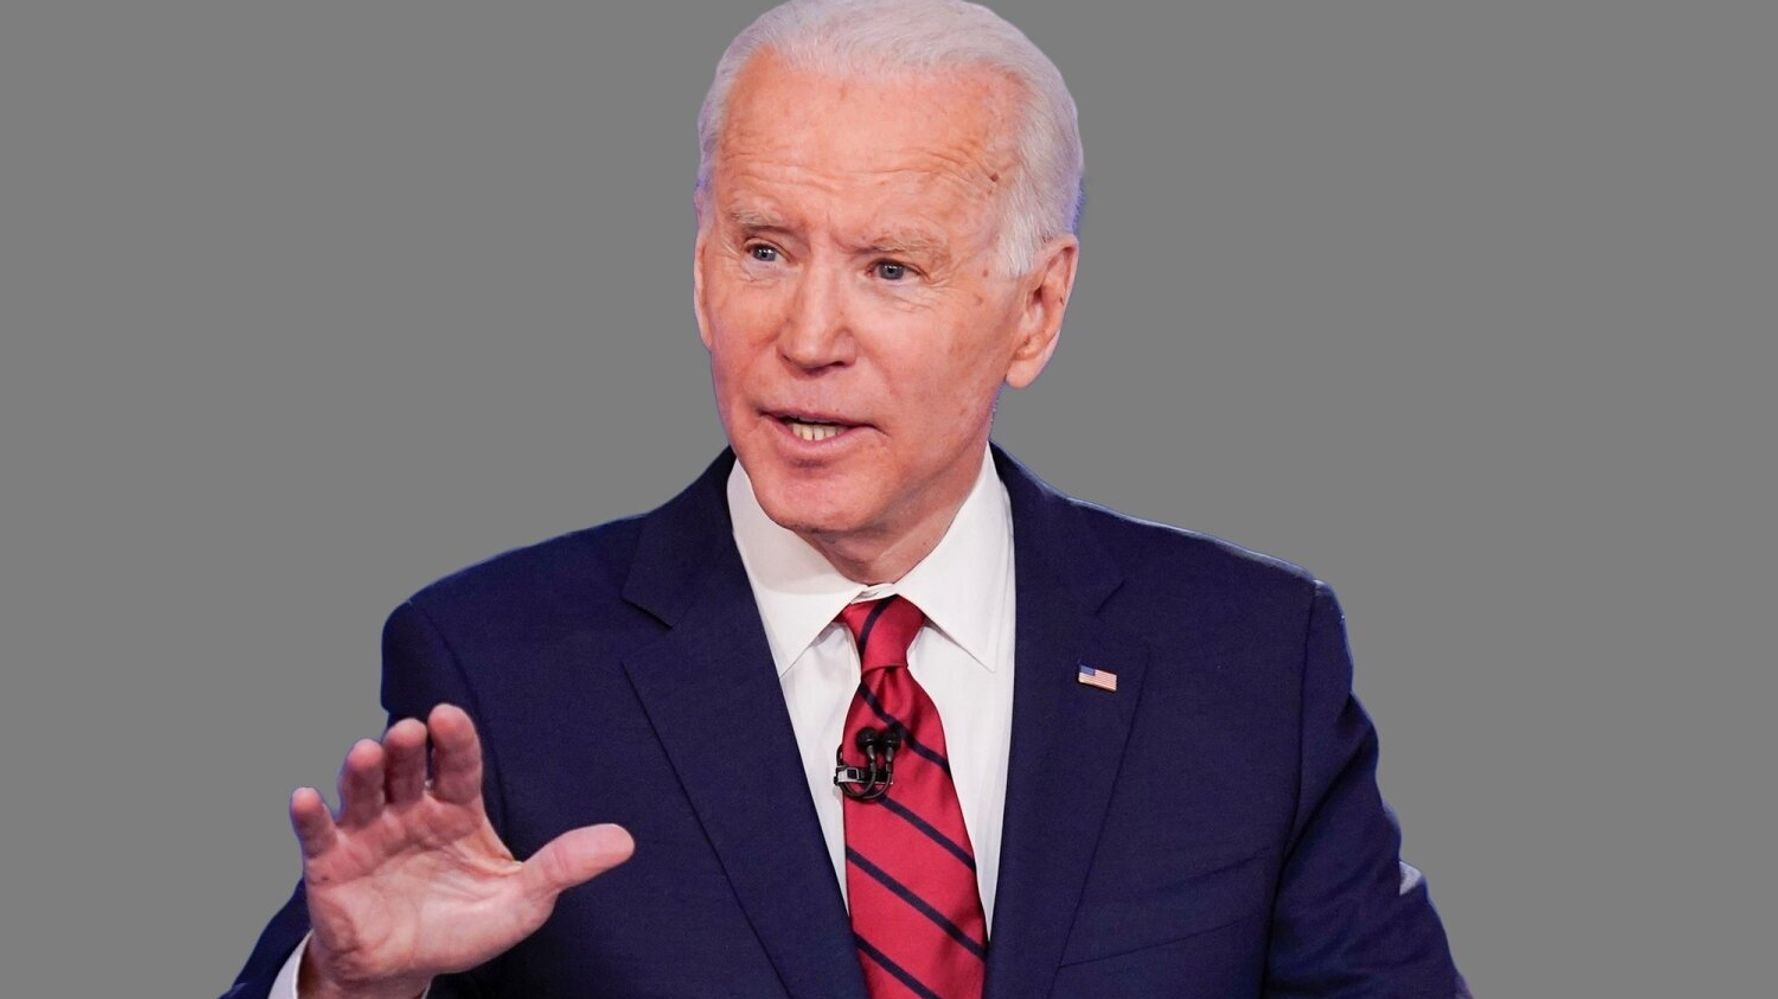 Joe Biden Has Advice For Trump. He's Trying To Get Him On The Phone.